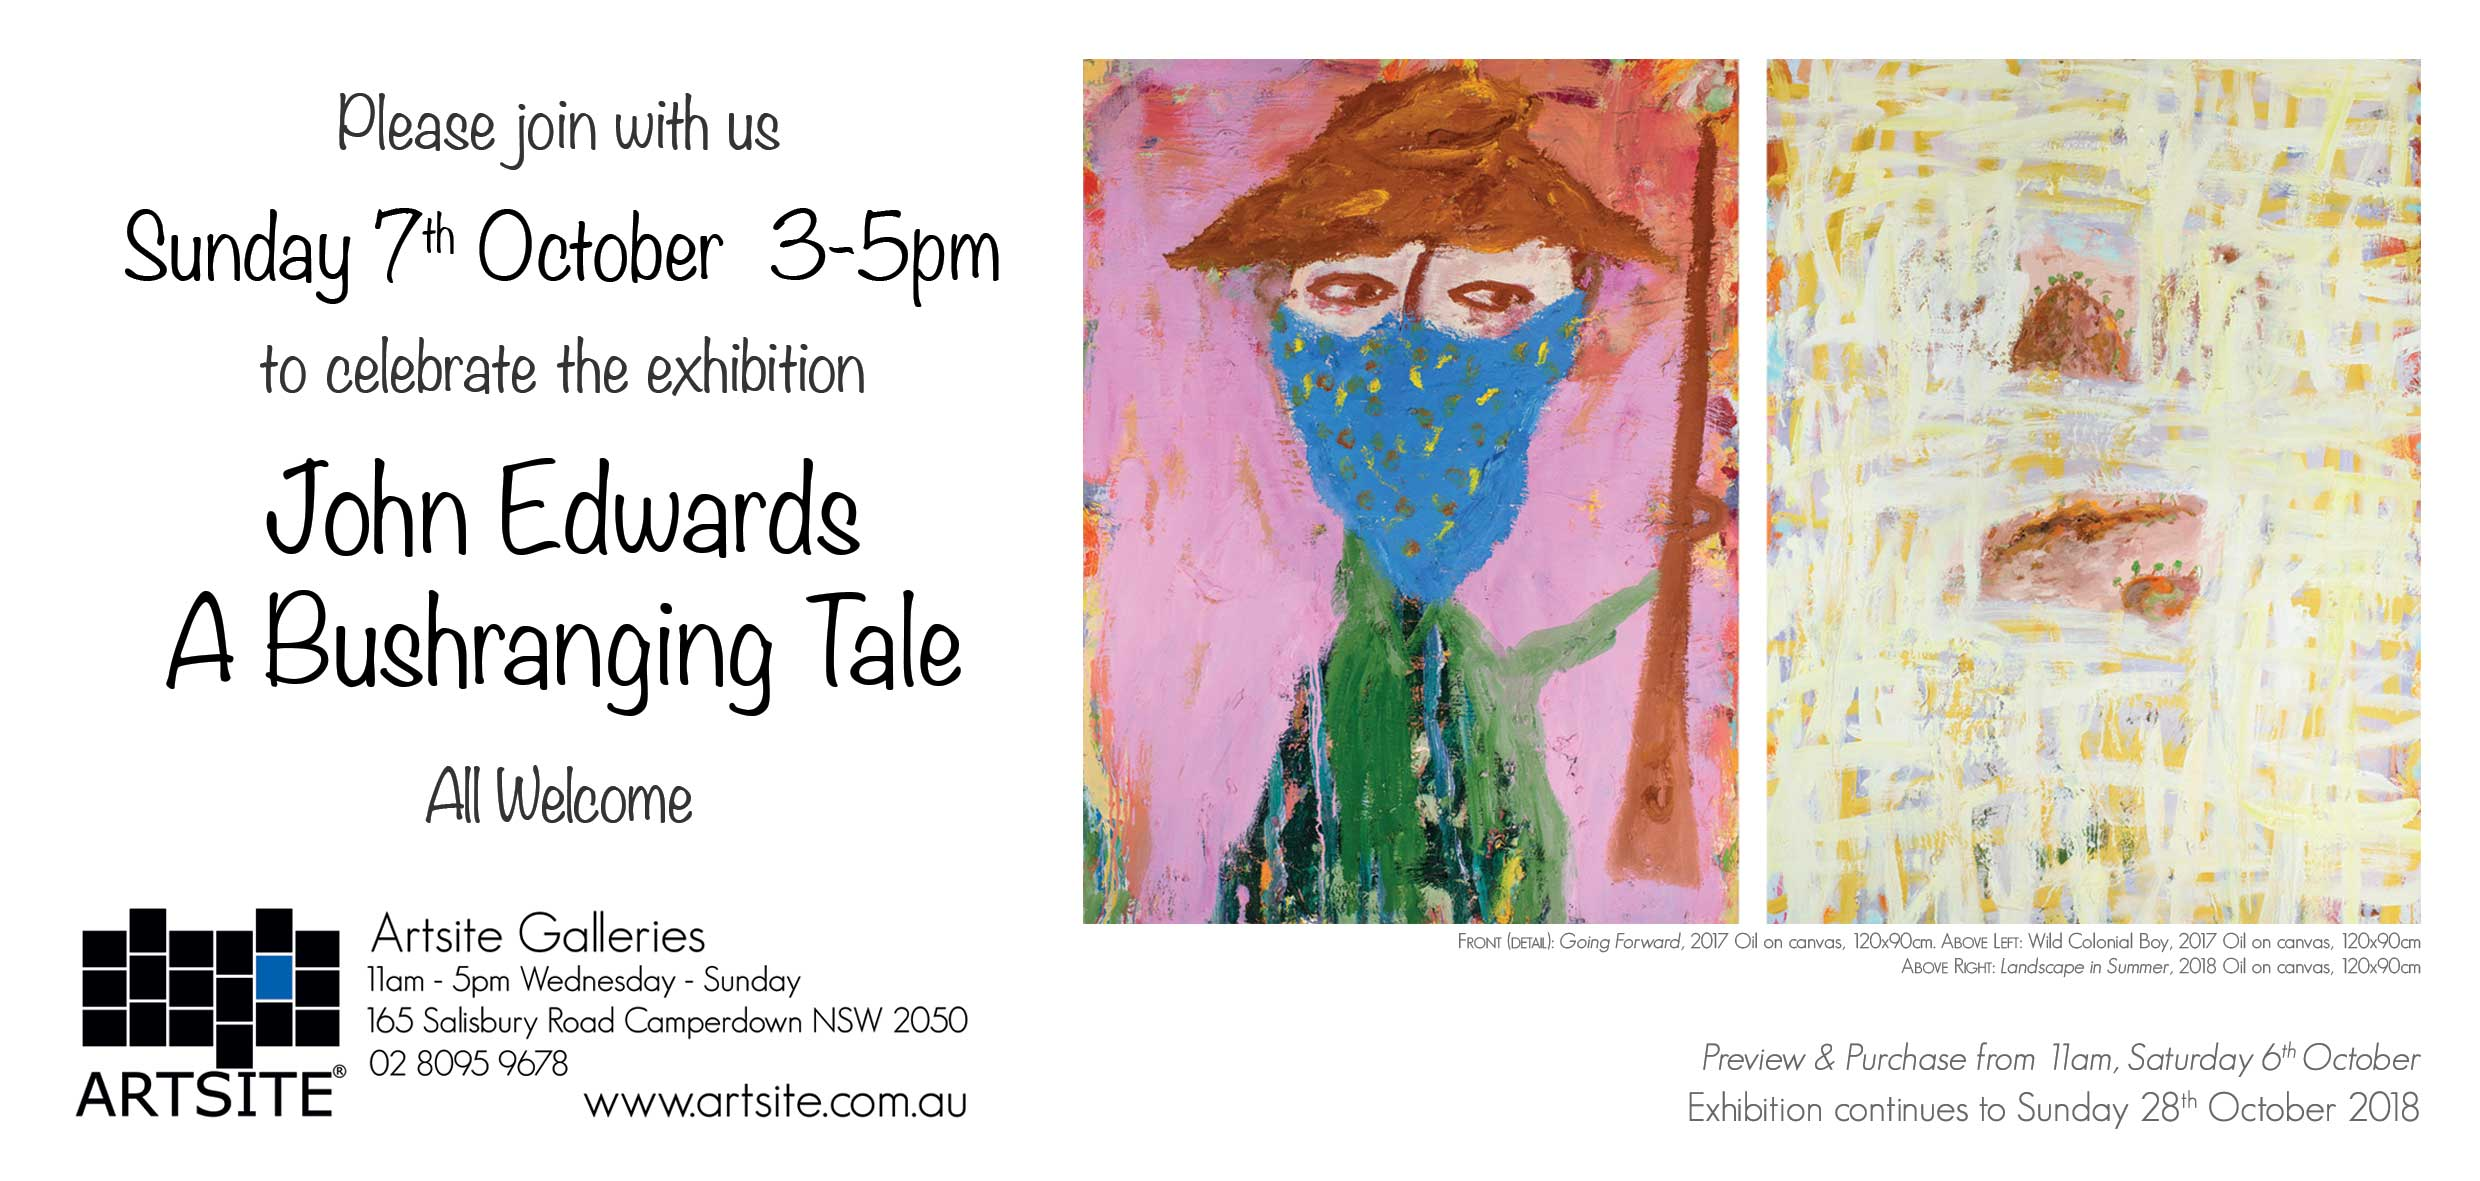 Artsite Galleries Exhibition | John Edwards | A Bushranging Tale | 06 - 28 October 2018.